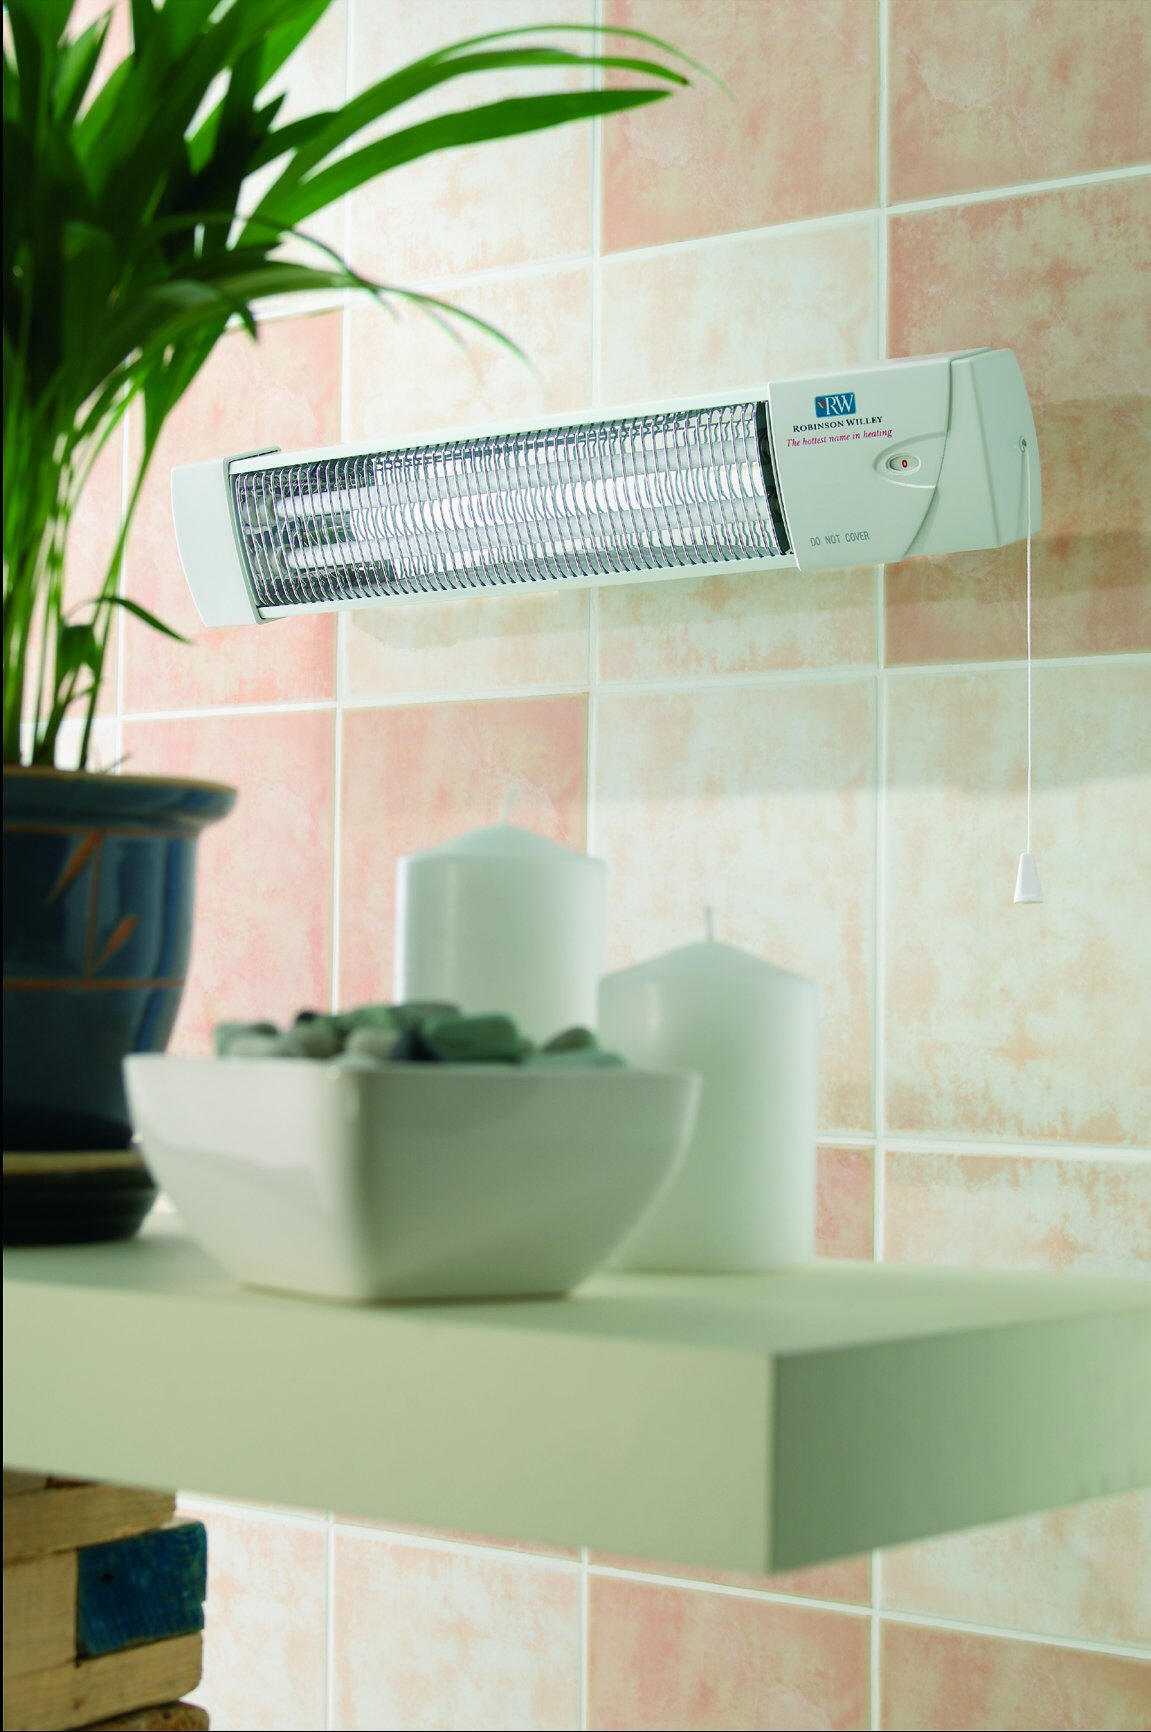 traditional infra red bathroom heaters